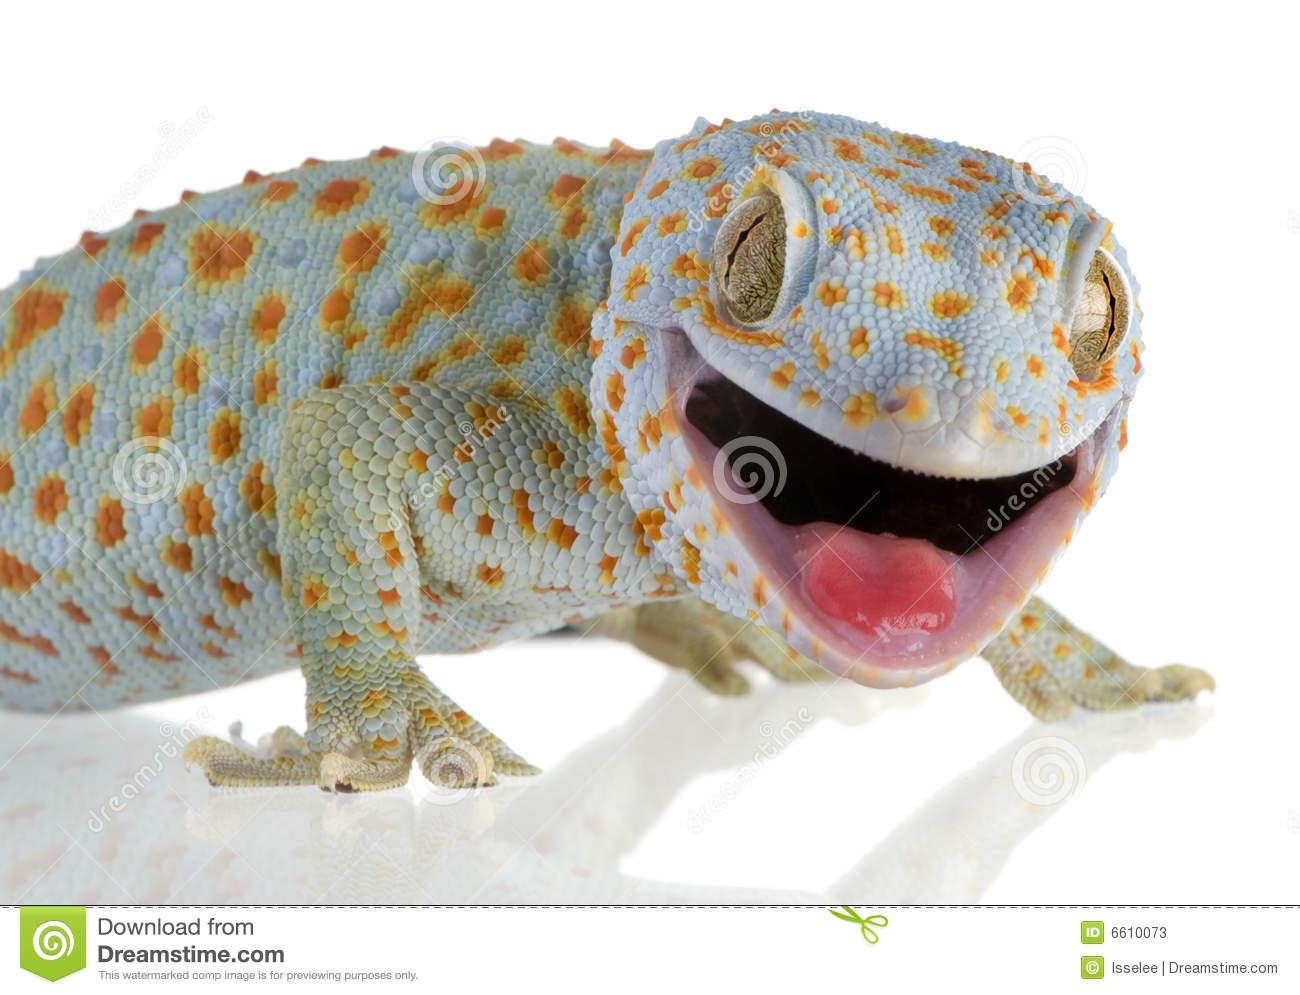 how to catch tokay gecko